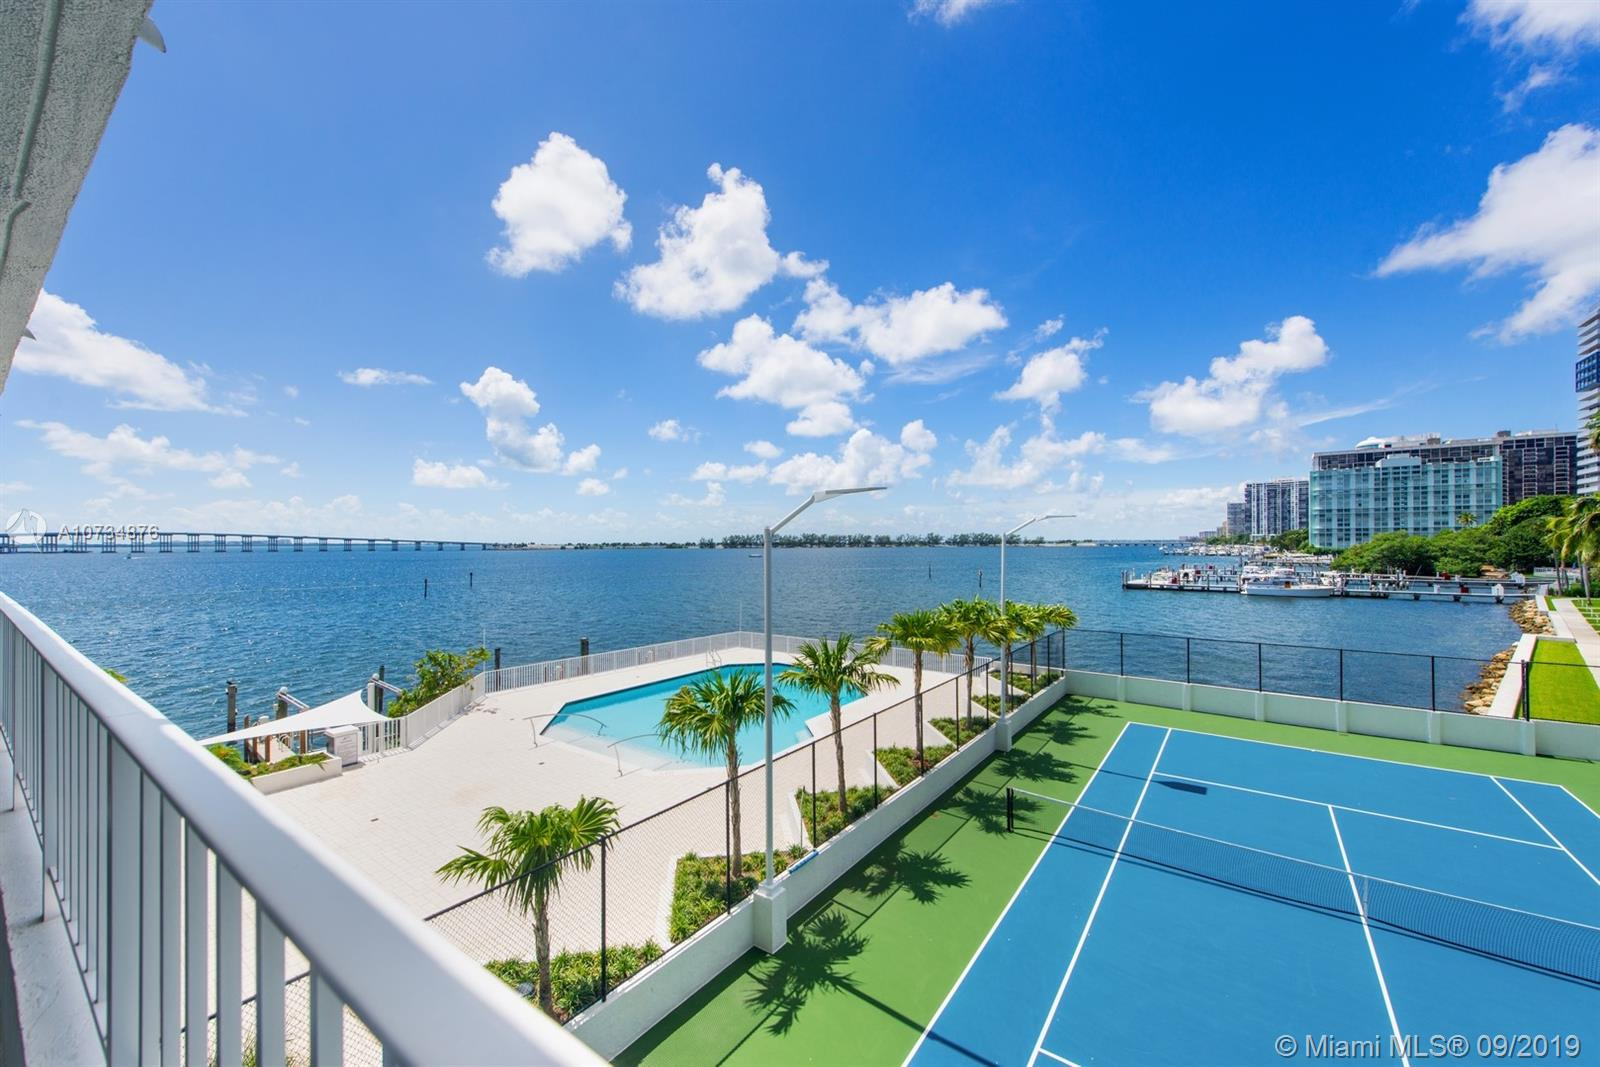 Brickell Harbour image #1